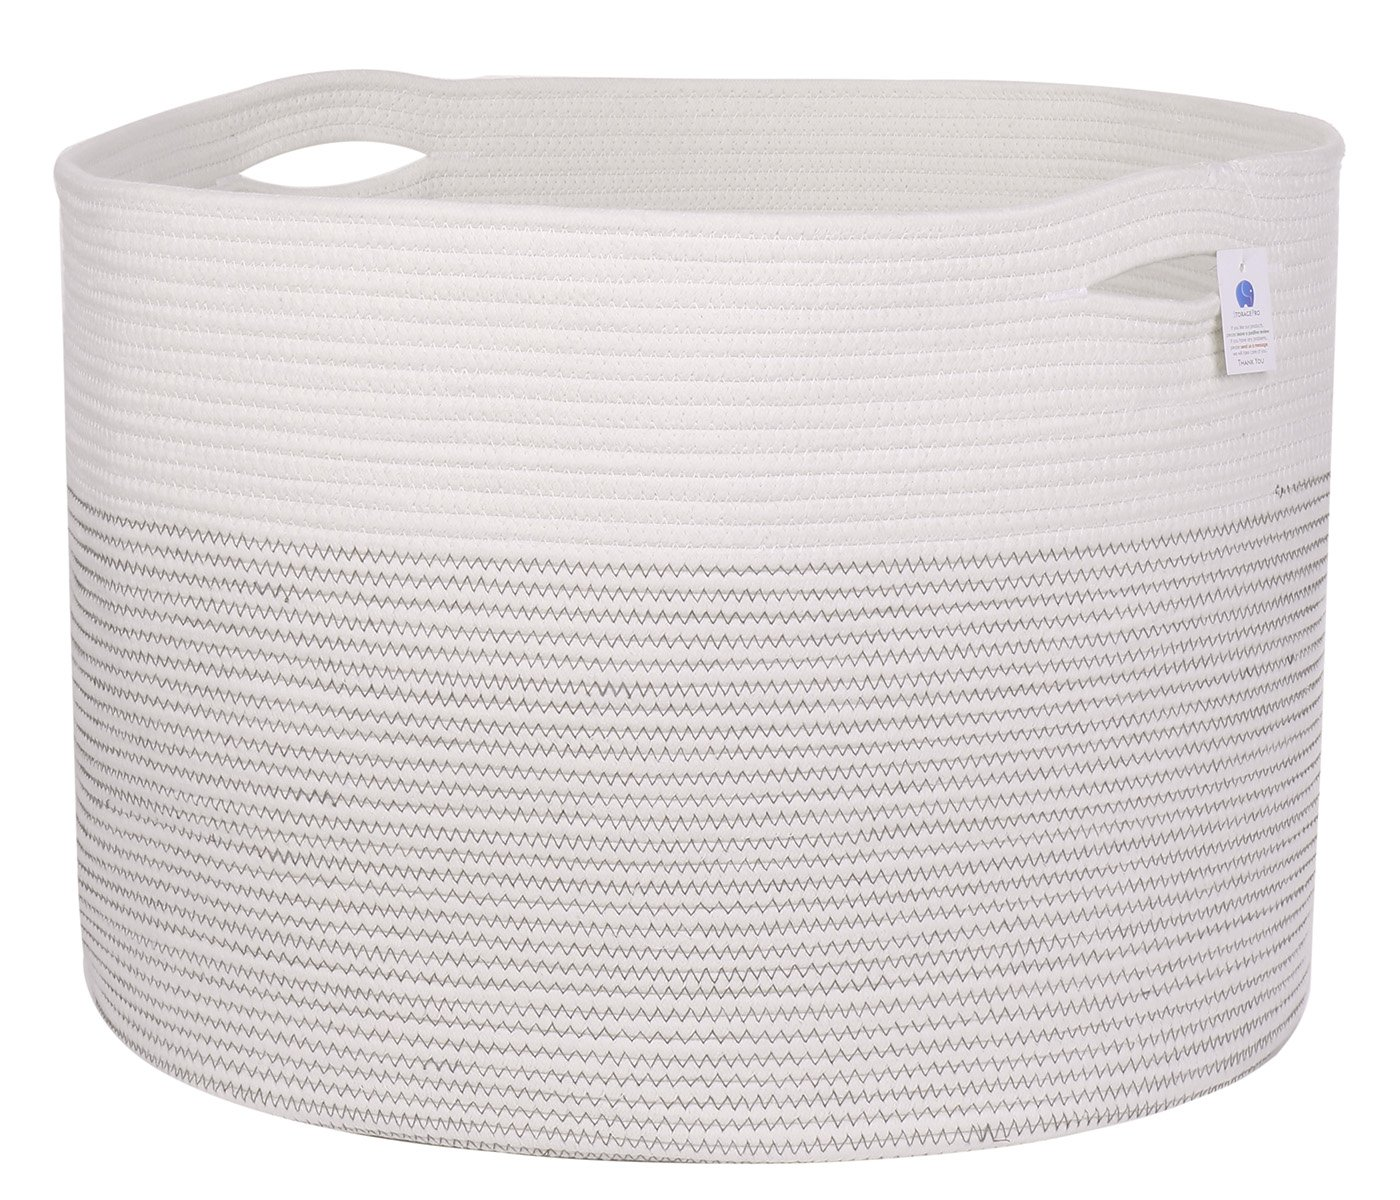 22'' x 22'' x 16'' Mega Size Extra Large Storage Basket, Cotton Rope Storage Baskets, Woven Laundry Hamper, Toy Storage Bin, for Toys Towel Blanket Basket in Living Room Baby Nursery, Large Basket White